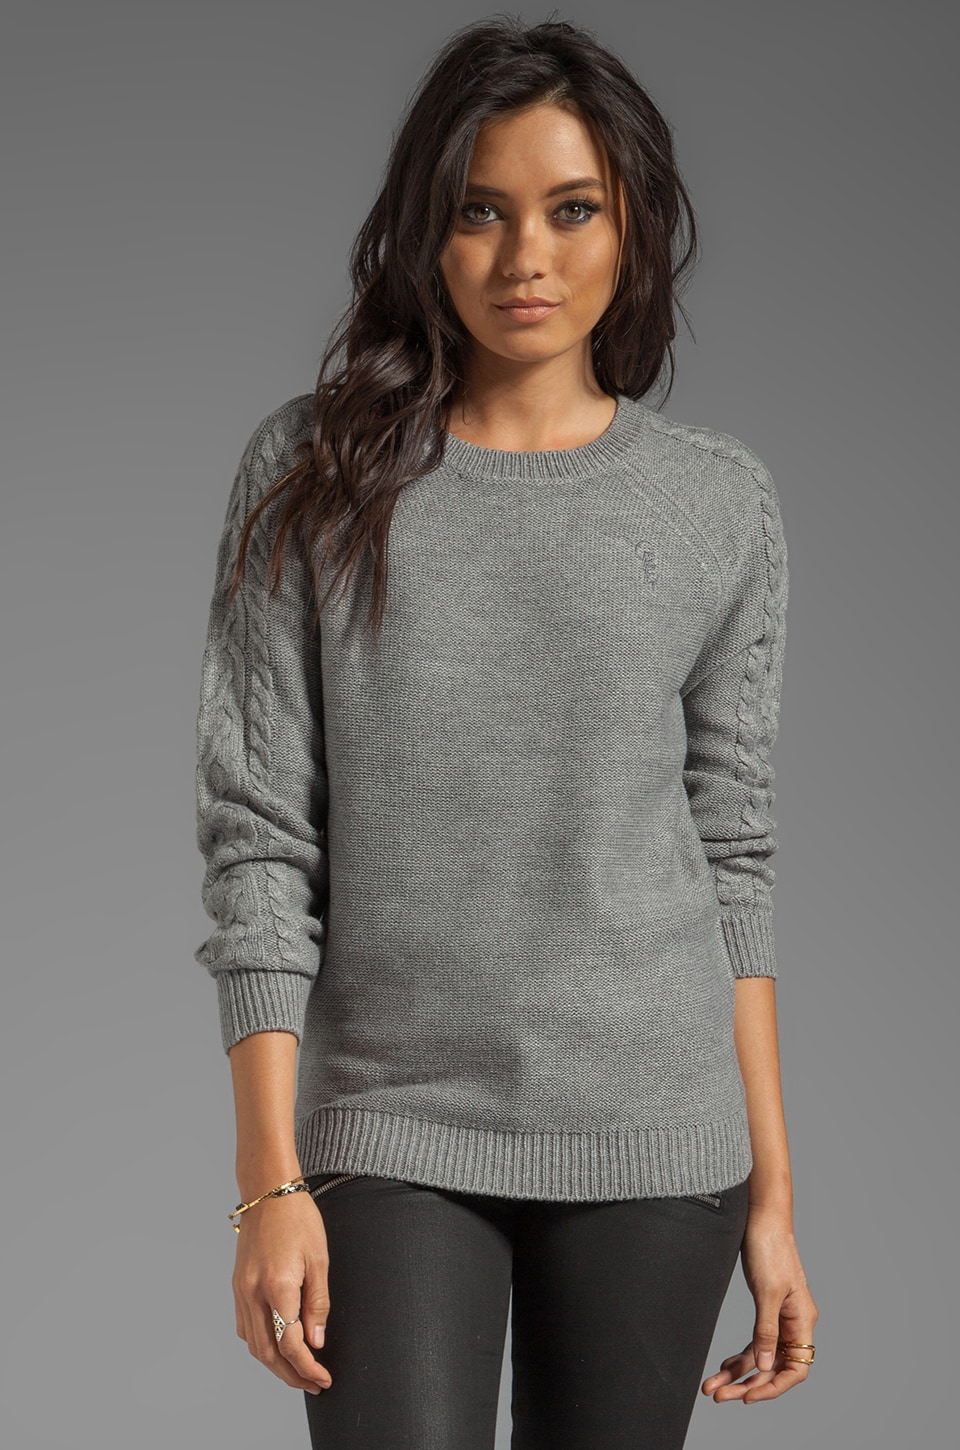 Obey Nottingham Sweater in Heather Grey